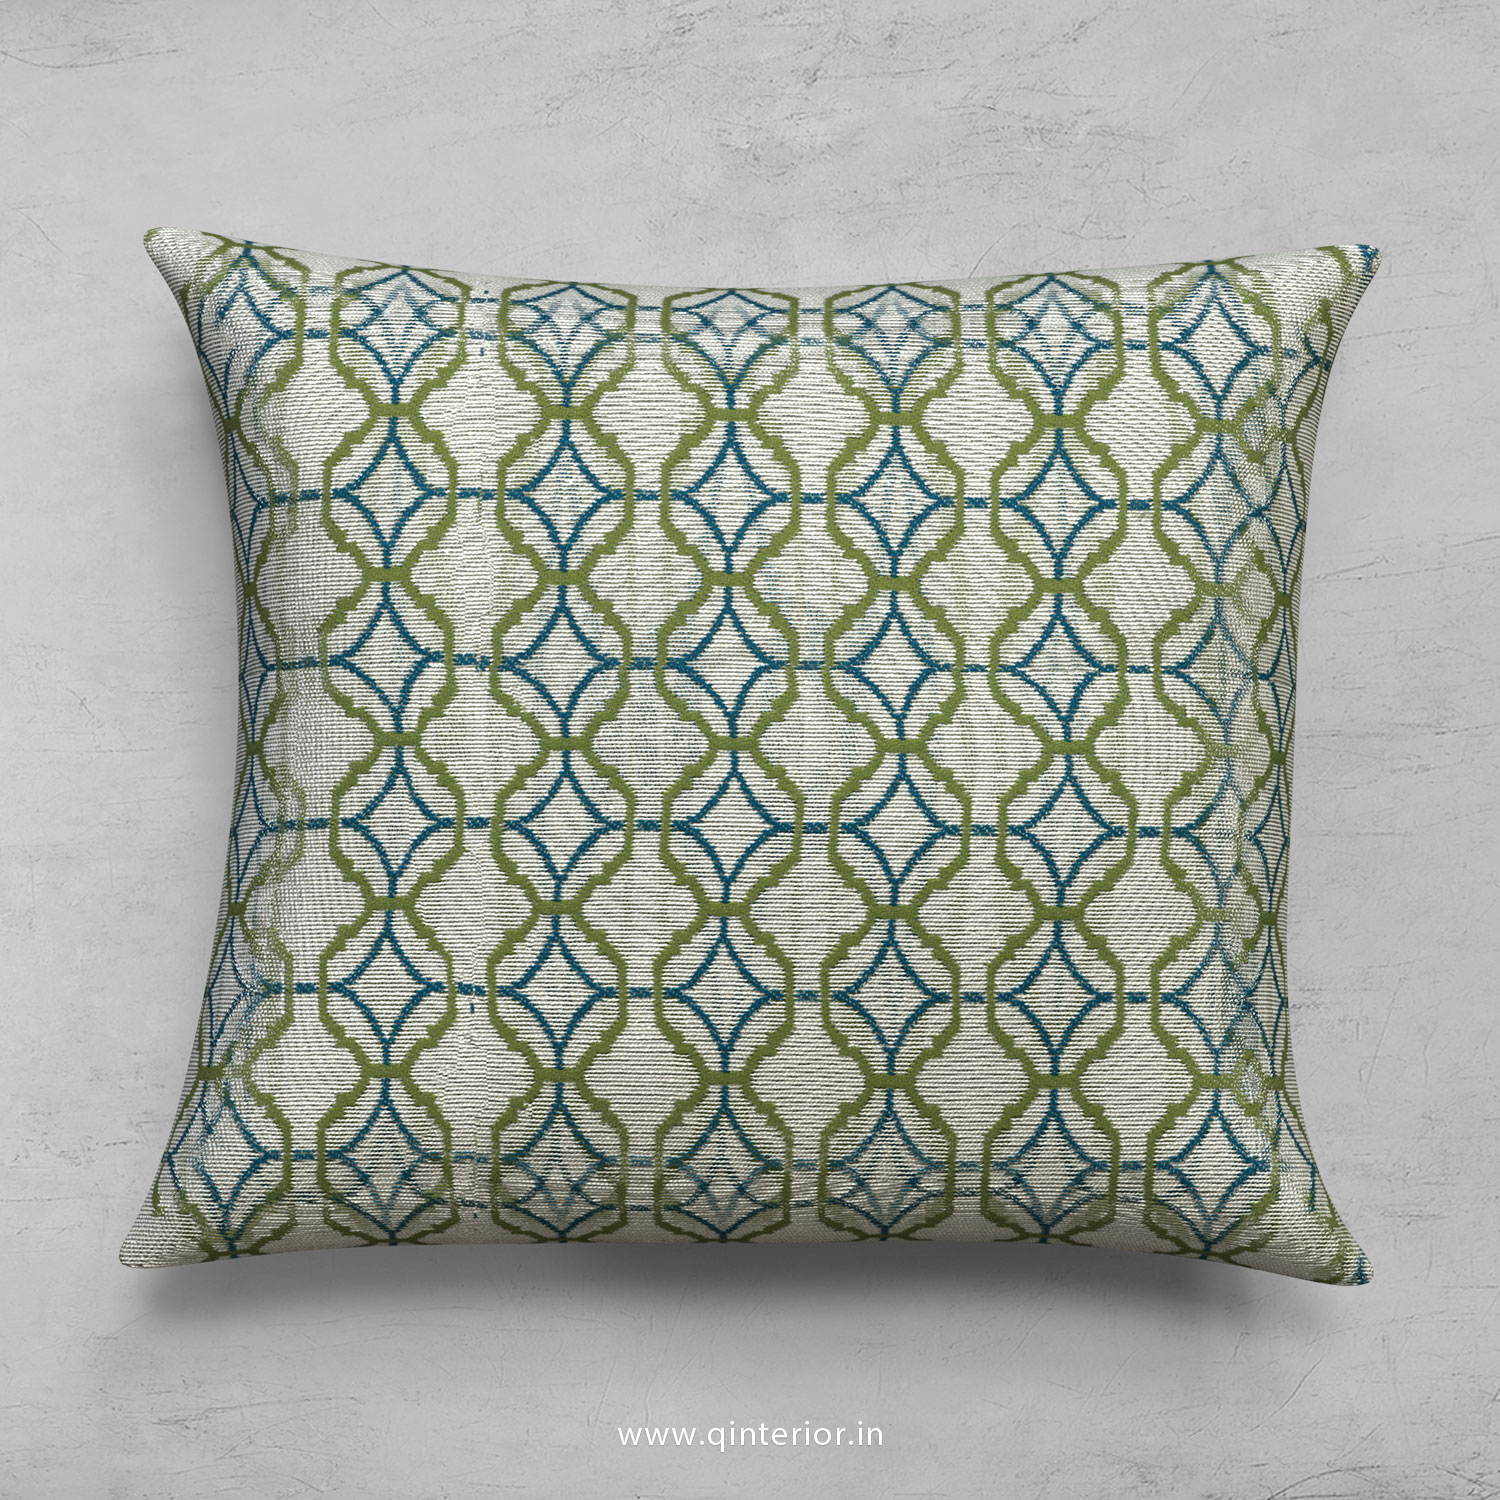 Cushion With Cushion Cover in Jacquard - CUS001 JQ21